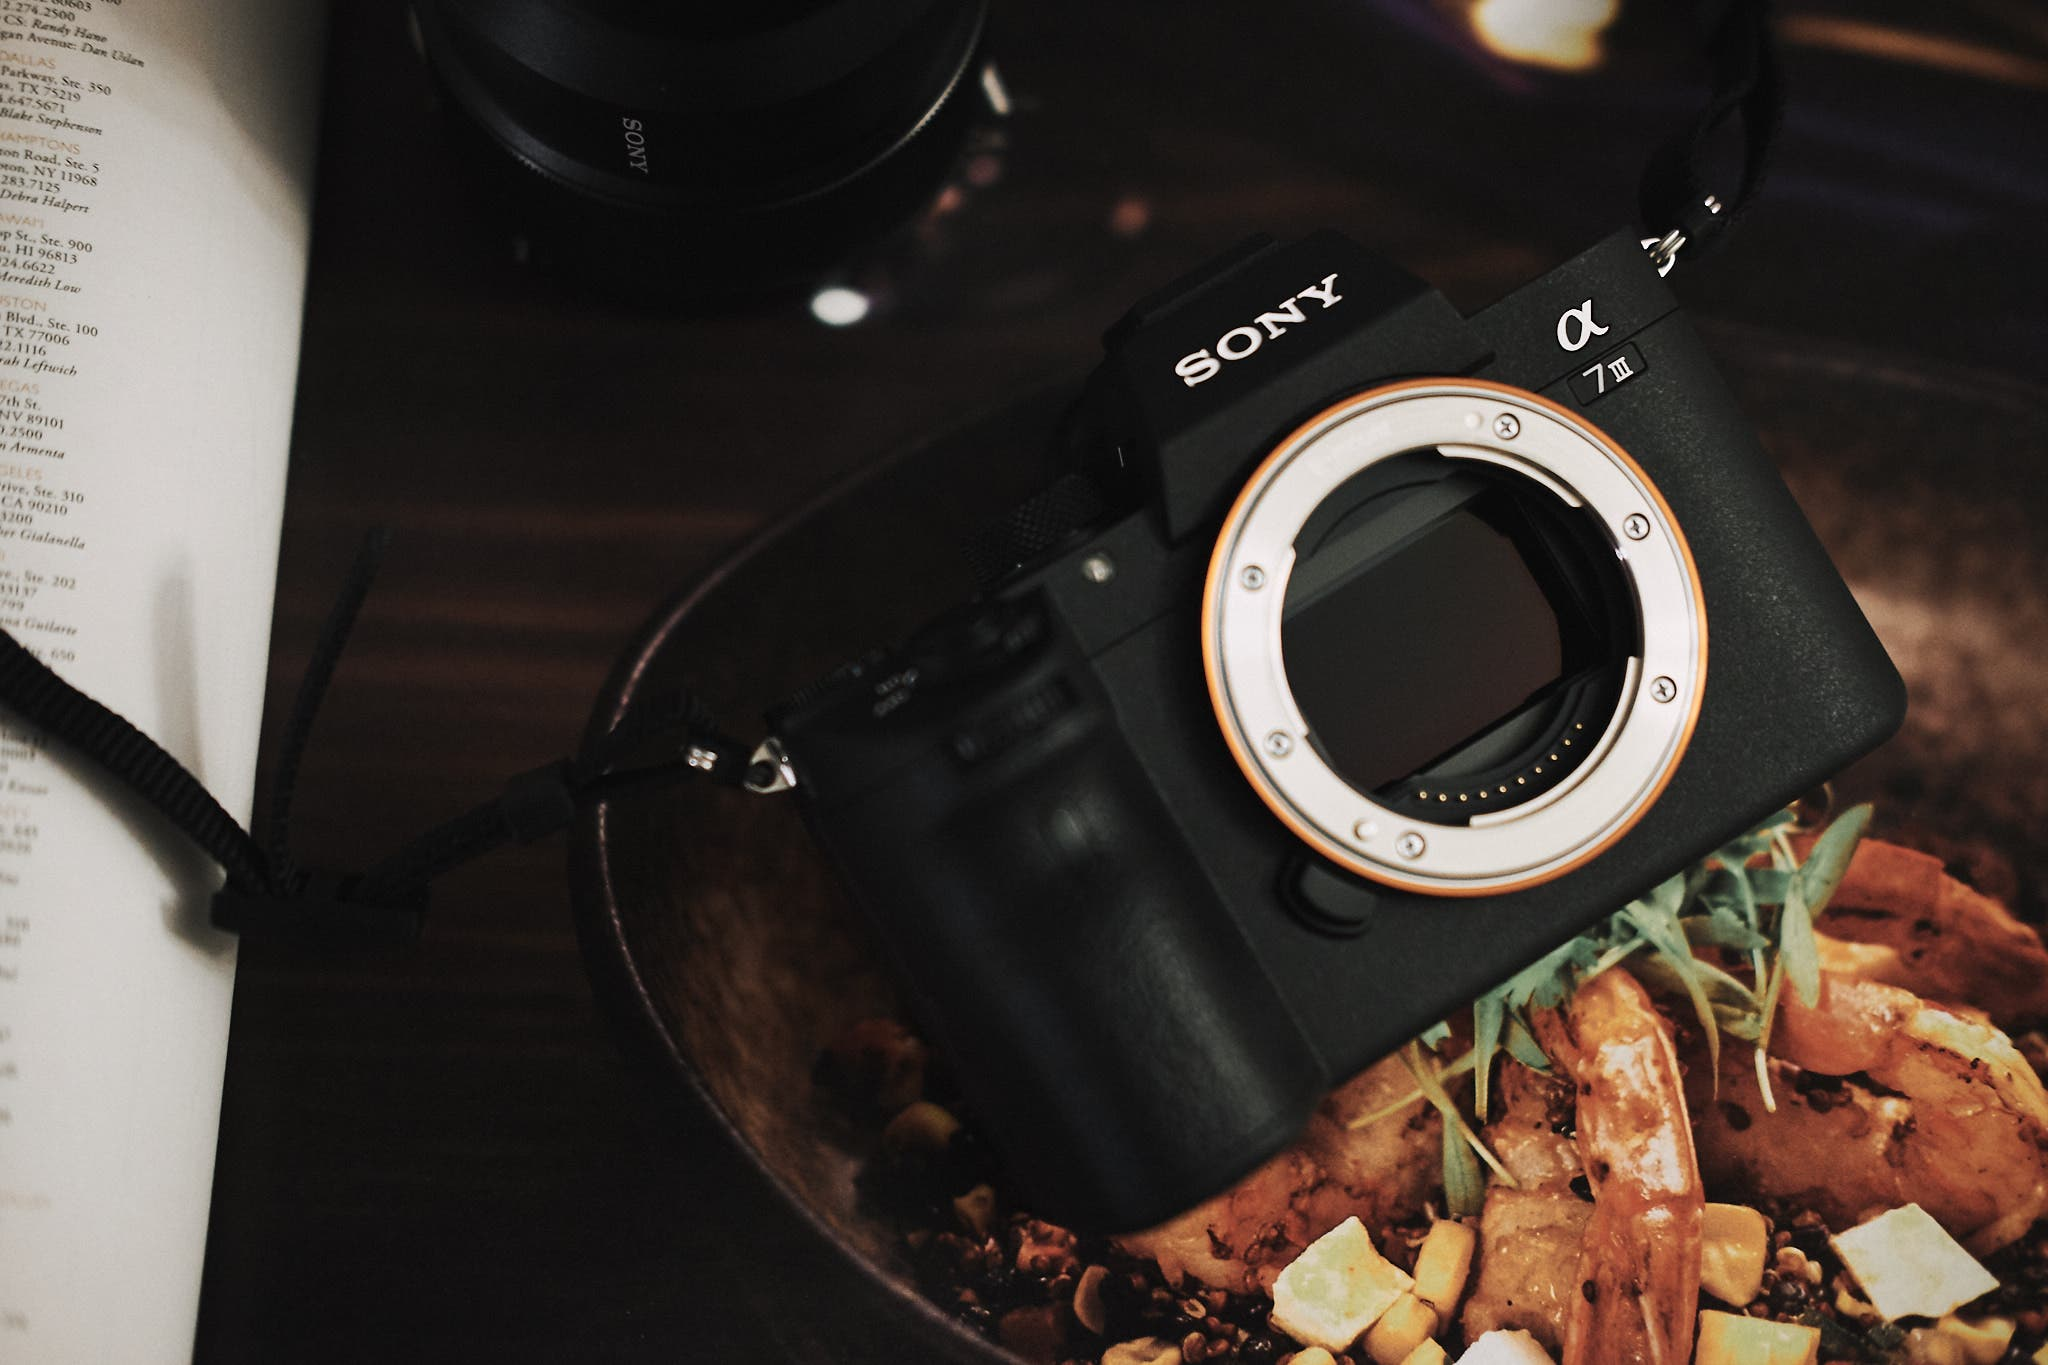 Sony A7 III Initial Impressions and Sample Images